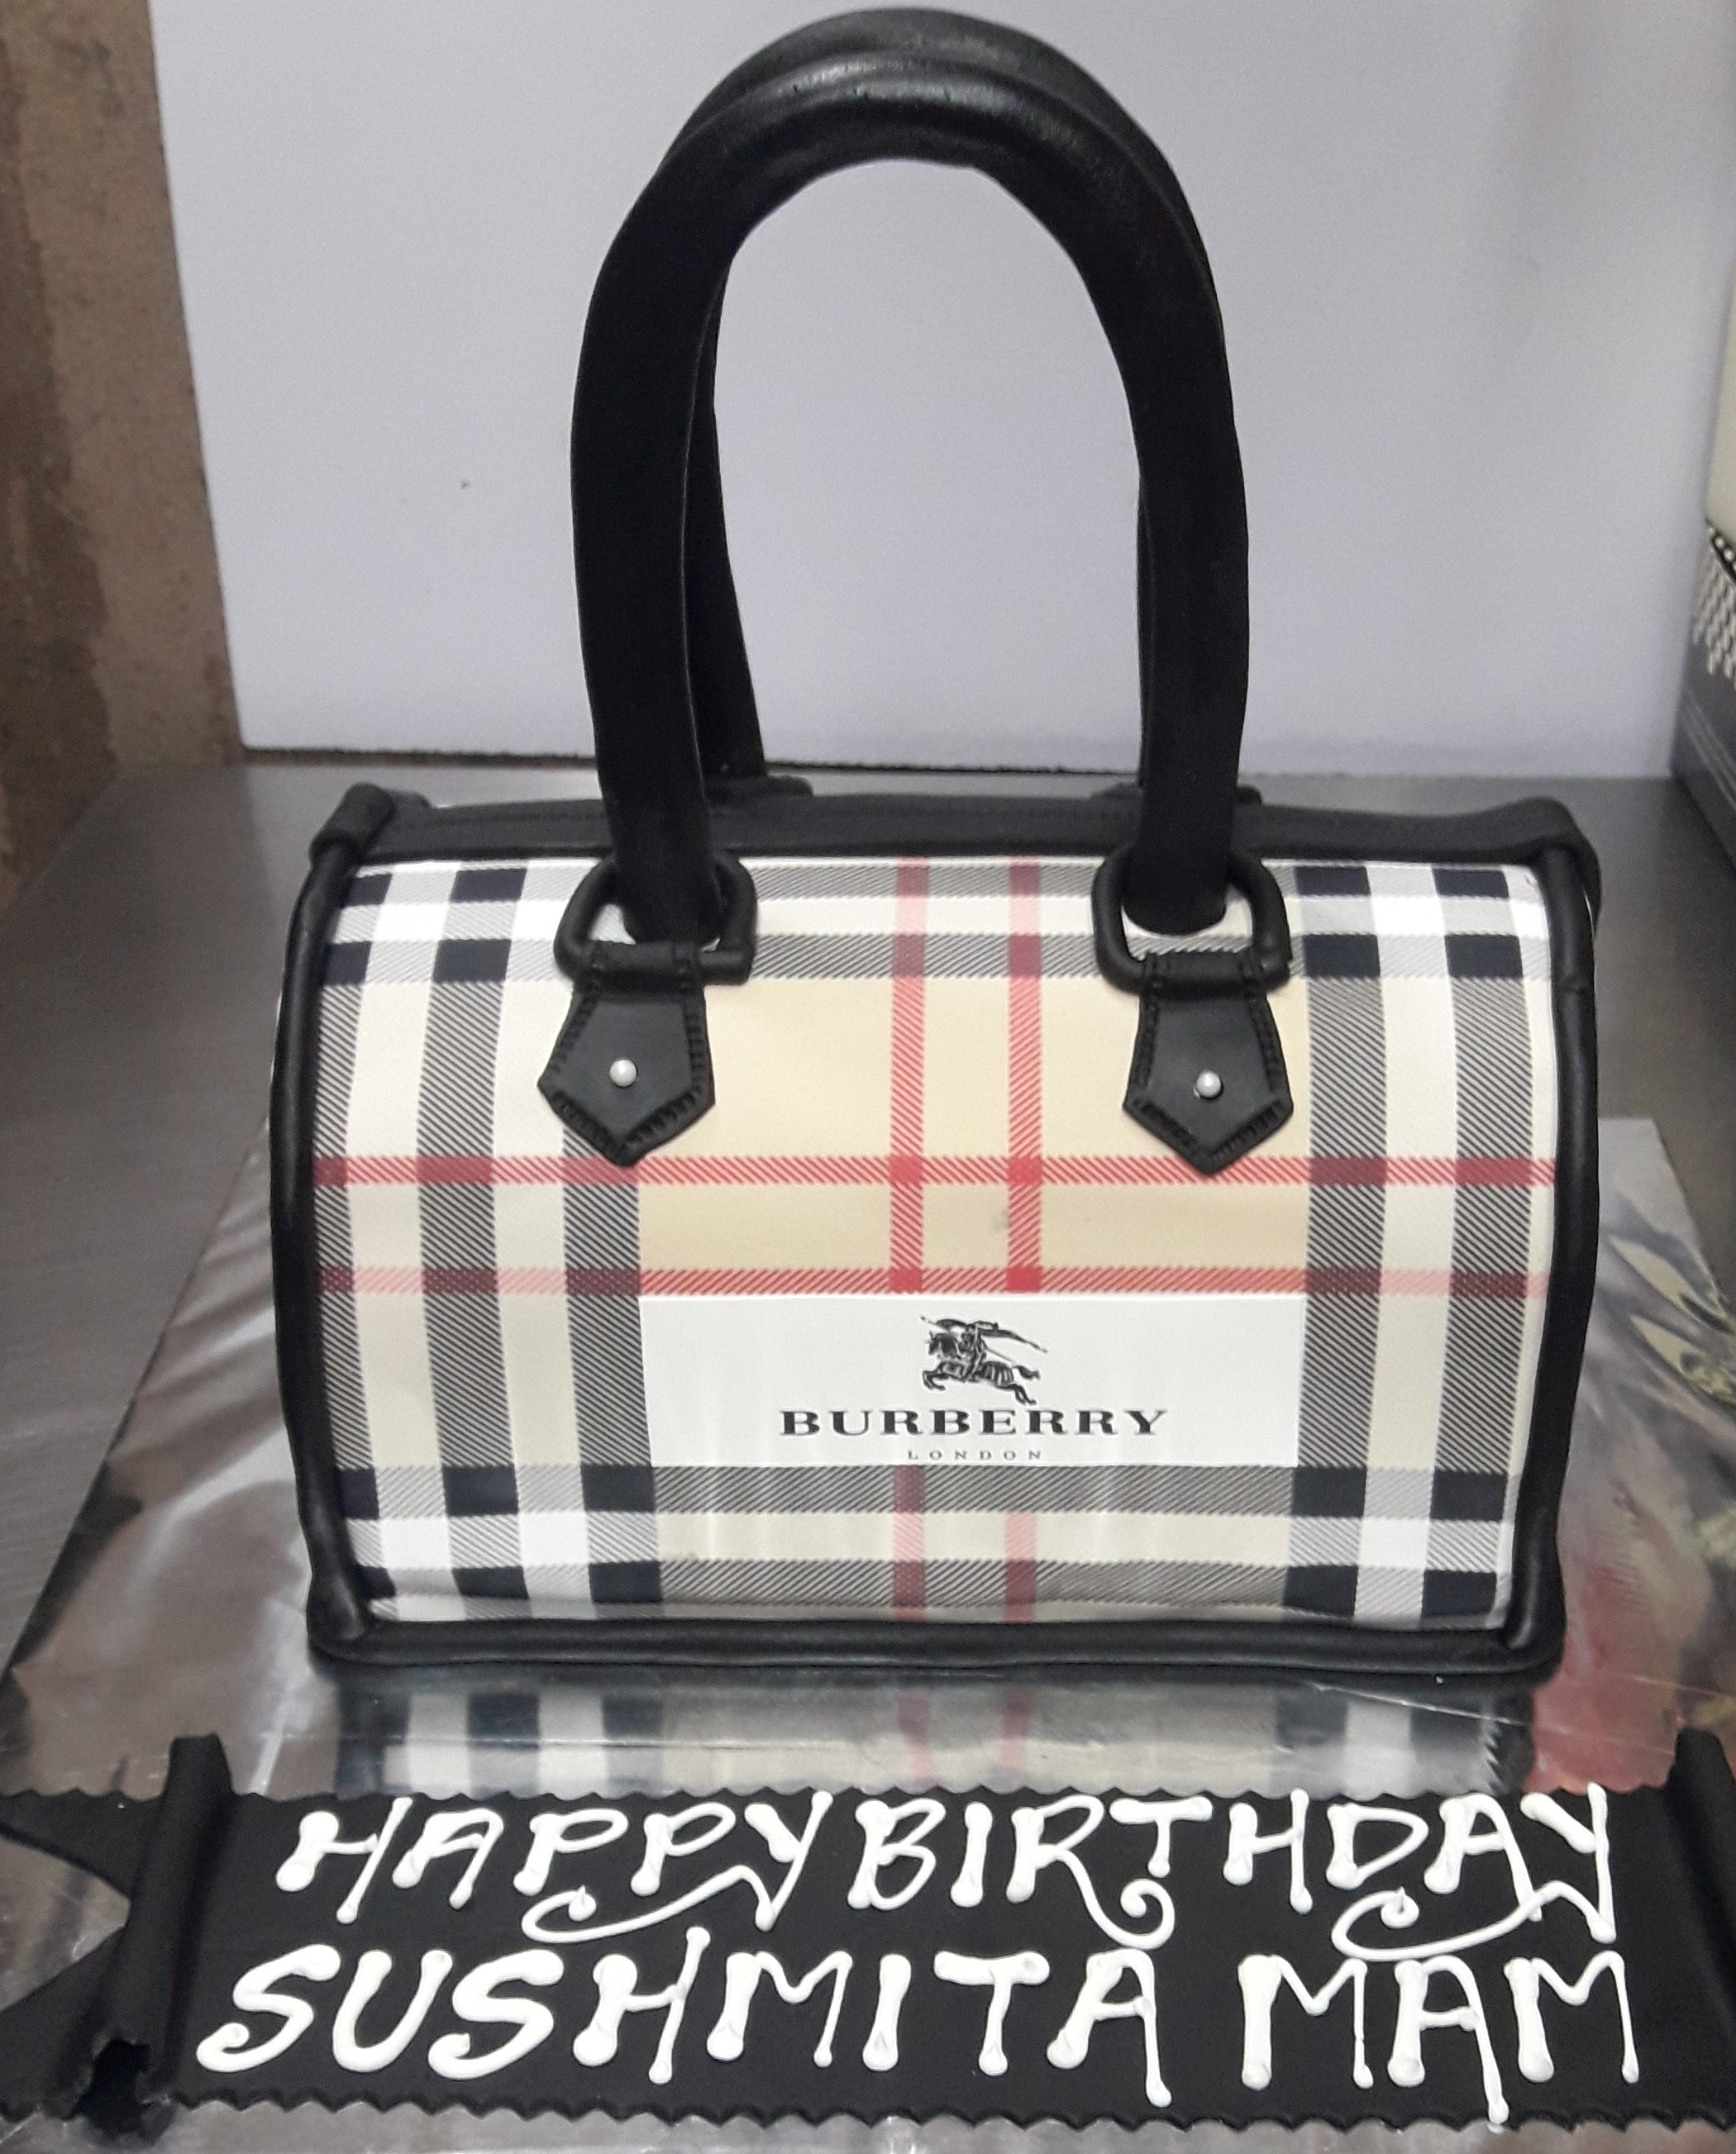 Burberry Bag Cake